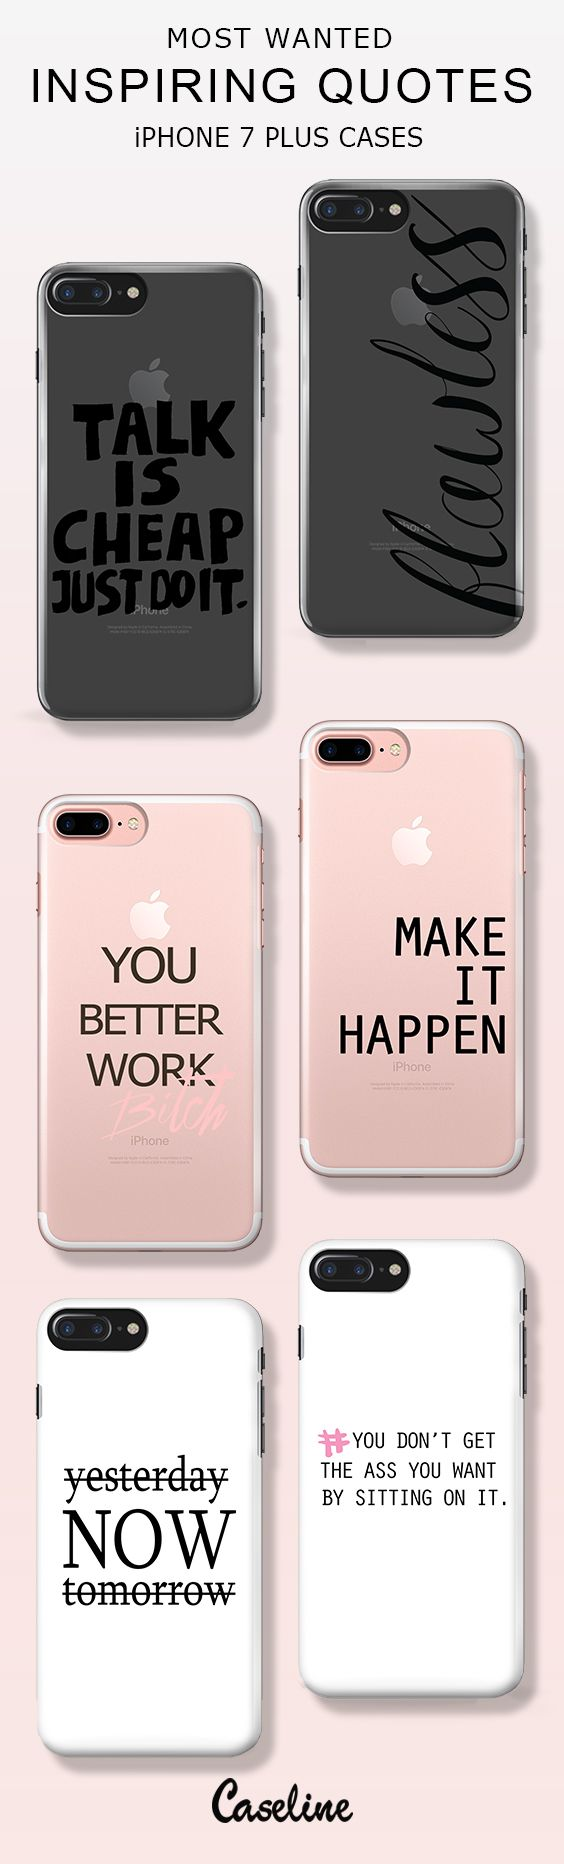 #styleetui #iphone #iphone7plus #iphone7 #apple #quotes #case #cases #phonecases #inspiringquotes #inspiring #fashion #mostwanted #girls #bestquotes #cover #protect